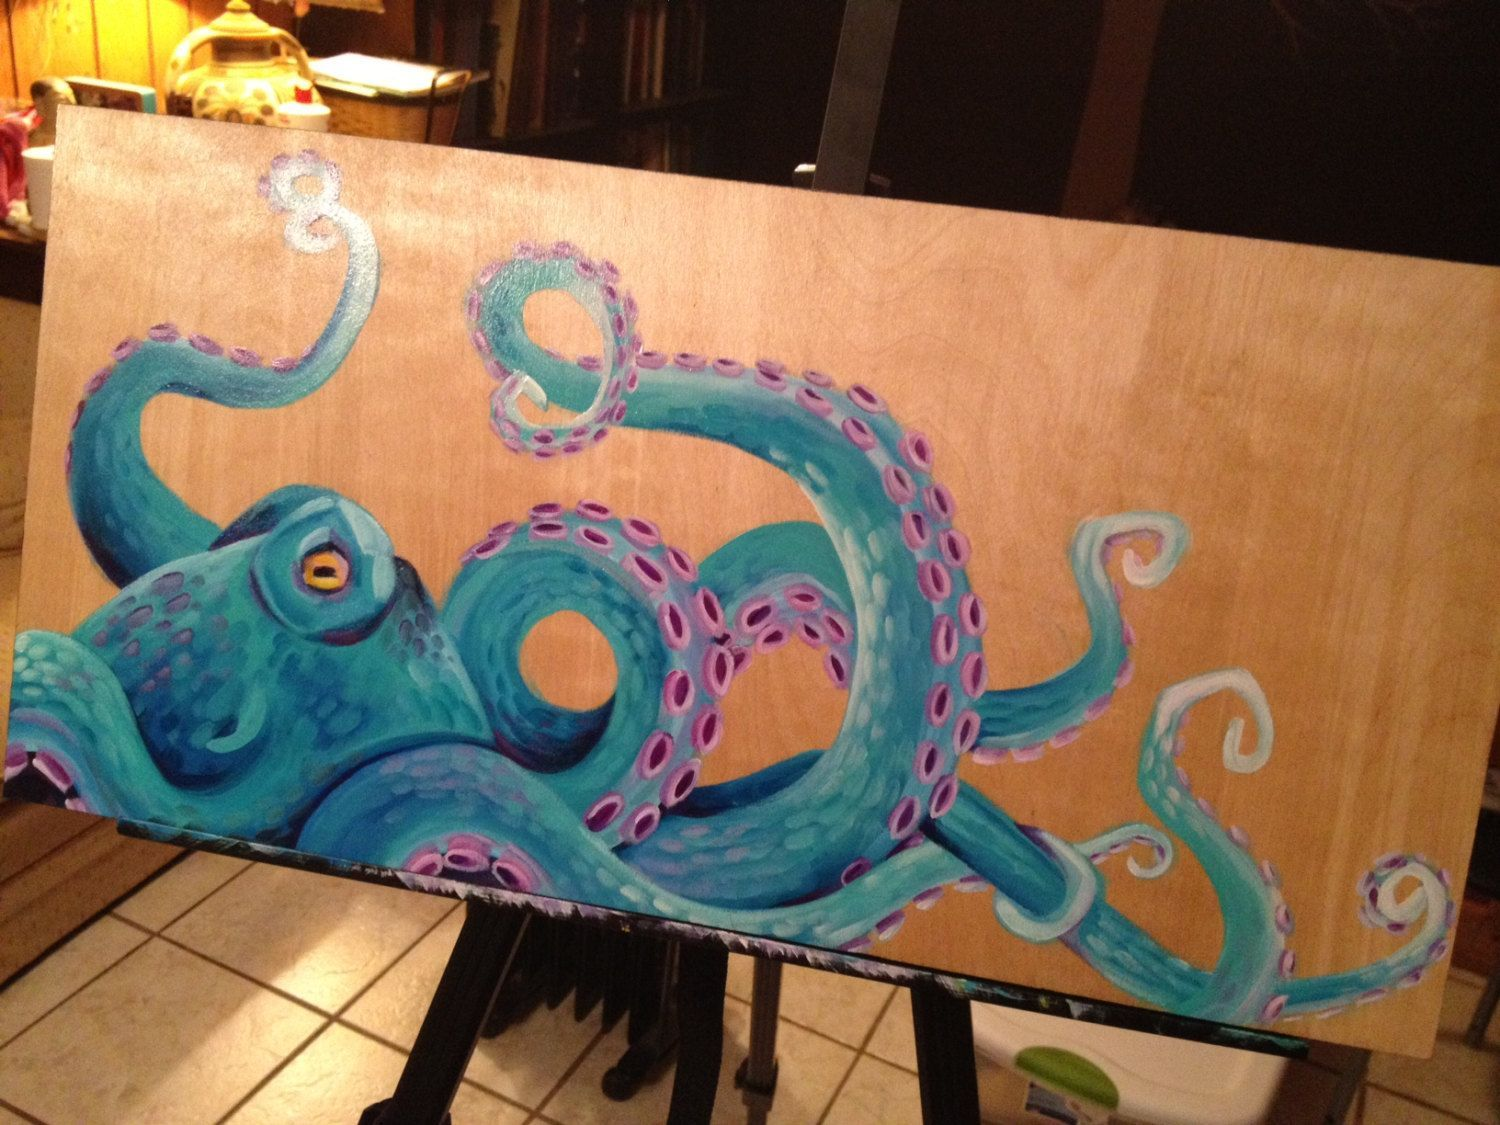 Pin by AMANDA on Illustrations Octopus painting, Painting